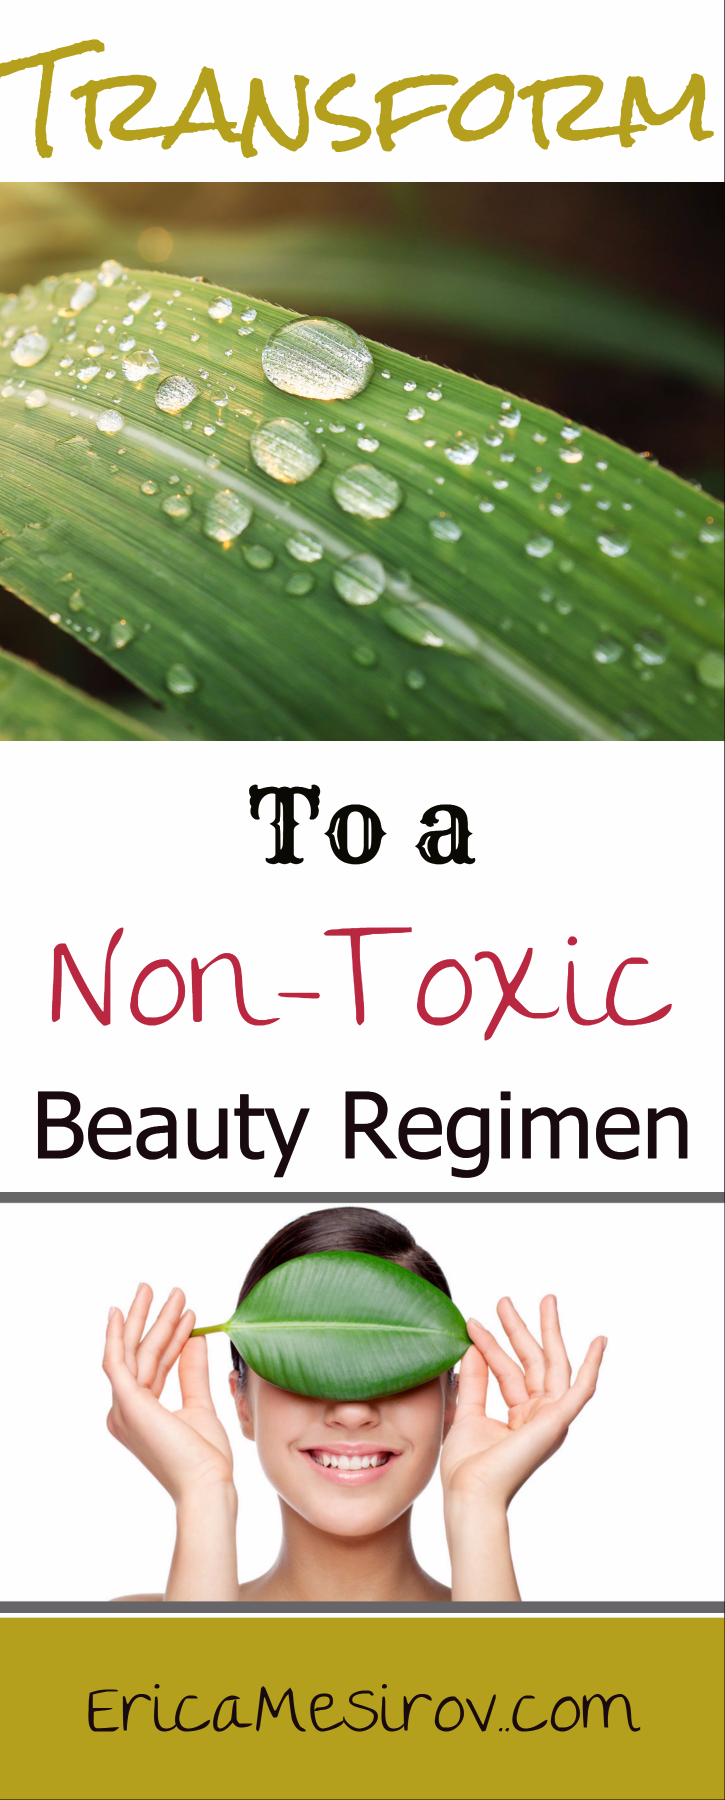 Transform to a non-toxic beauty regimen